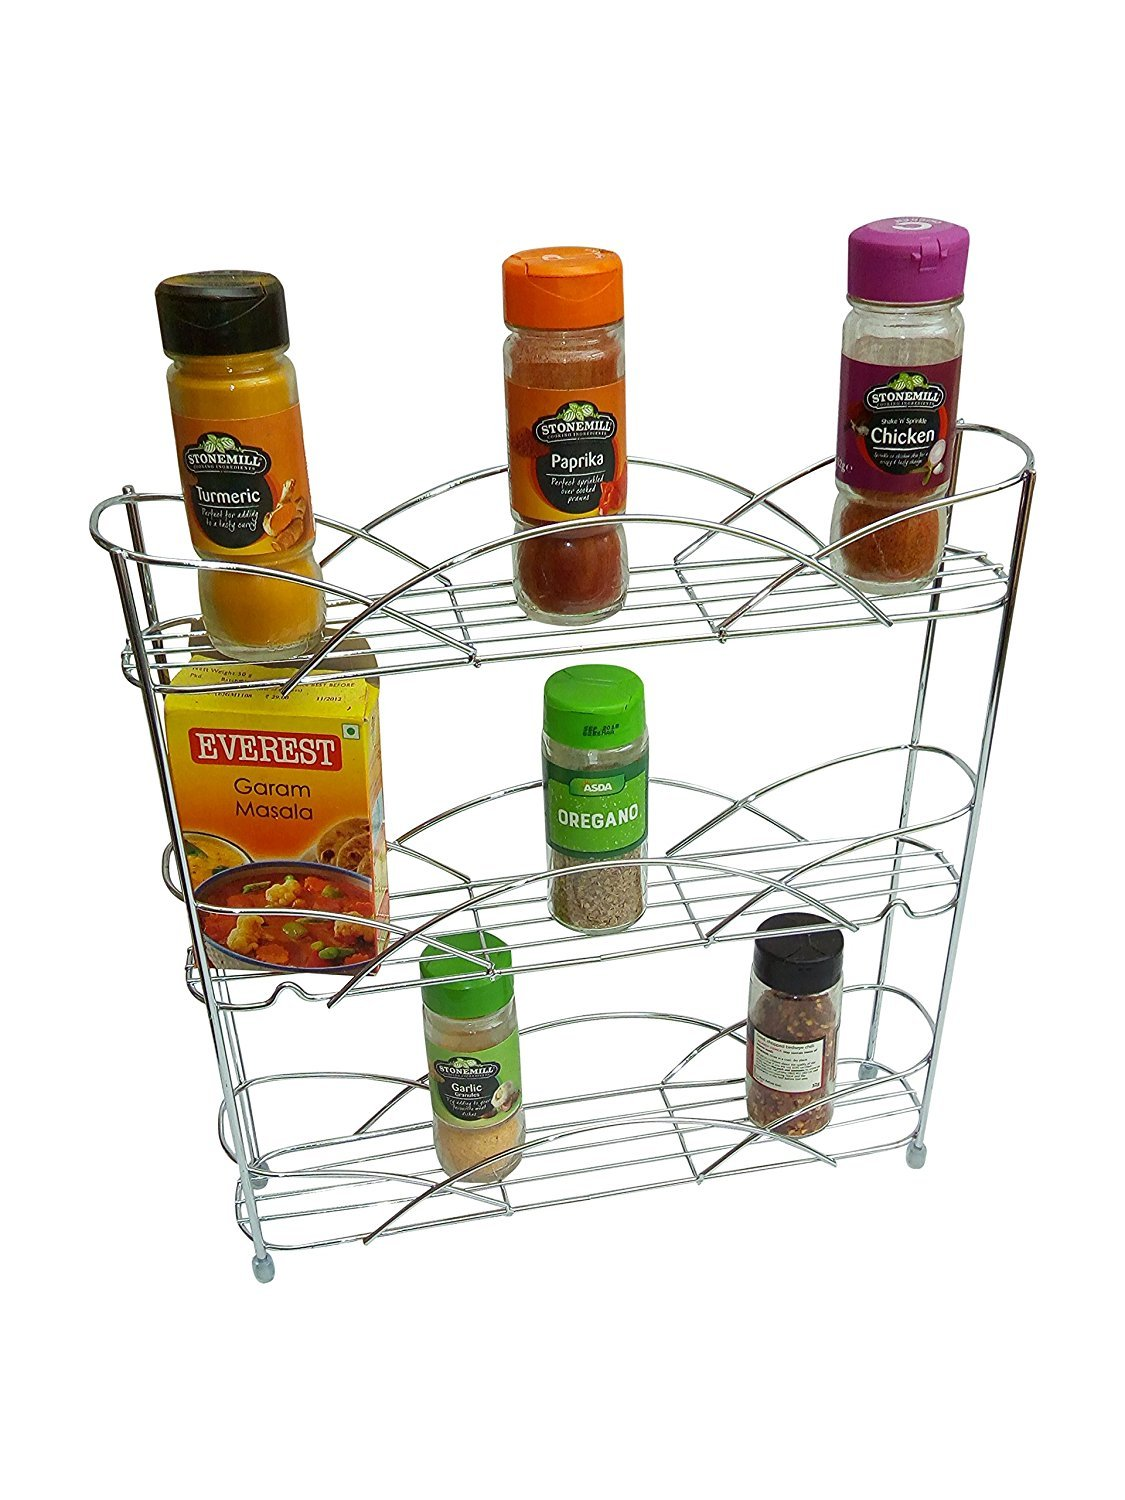 ADEPTNA Heavy duty Free Standing 3 Tier Spice and Herb Rack Non Slip Rubber Feet Universal Size Fits Most Brands